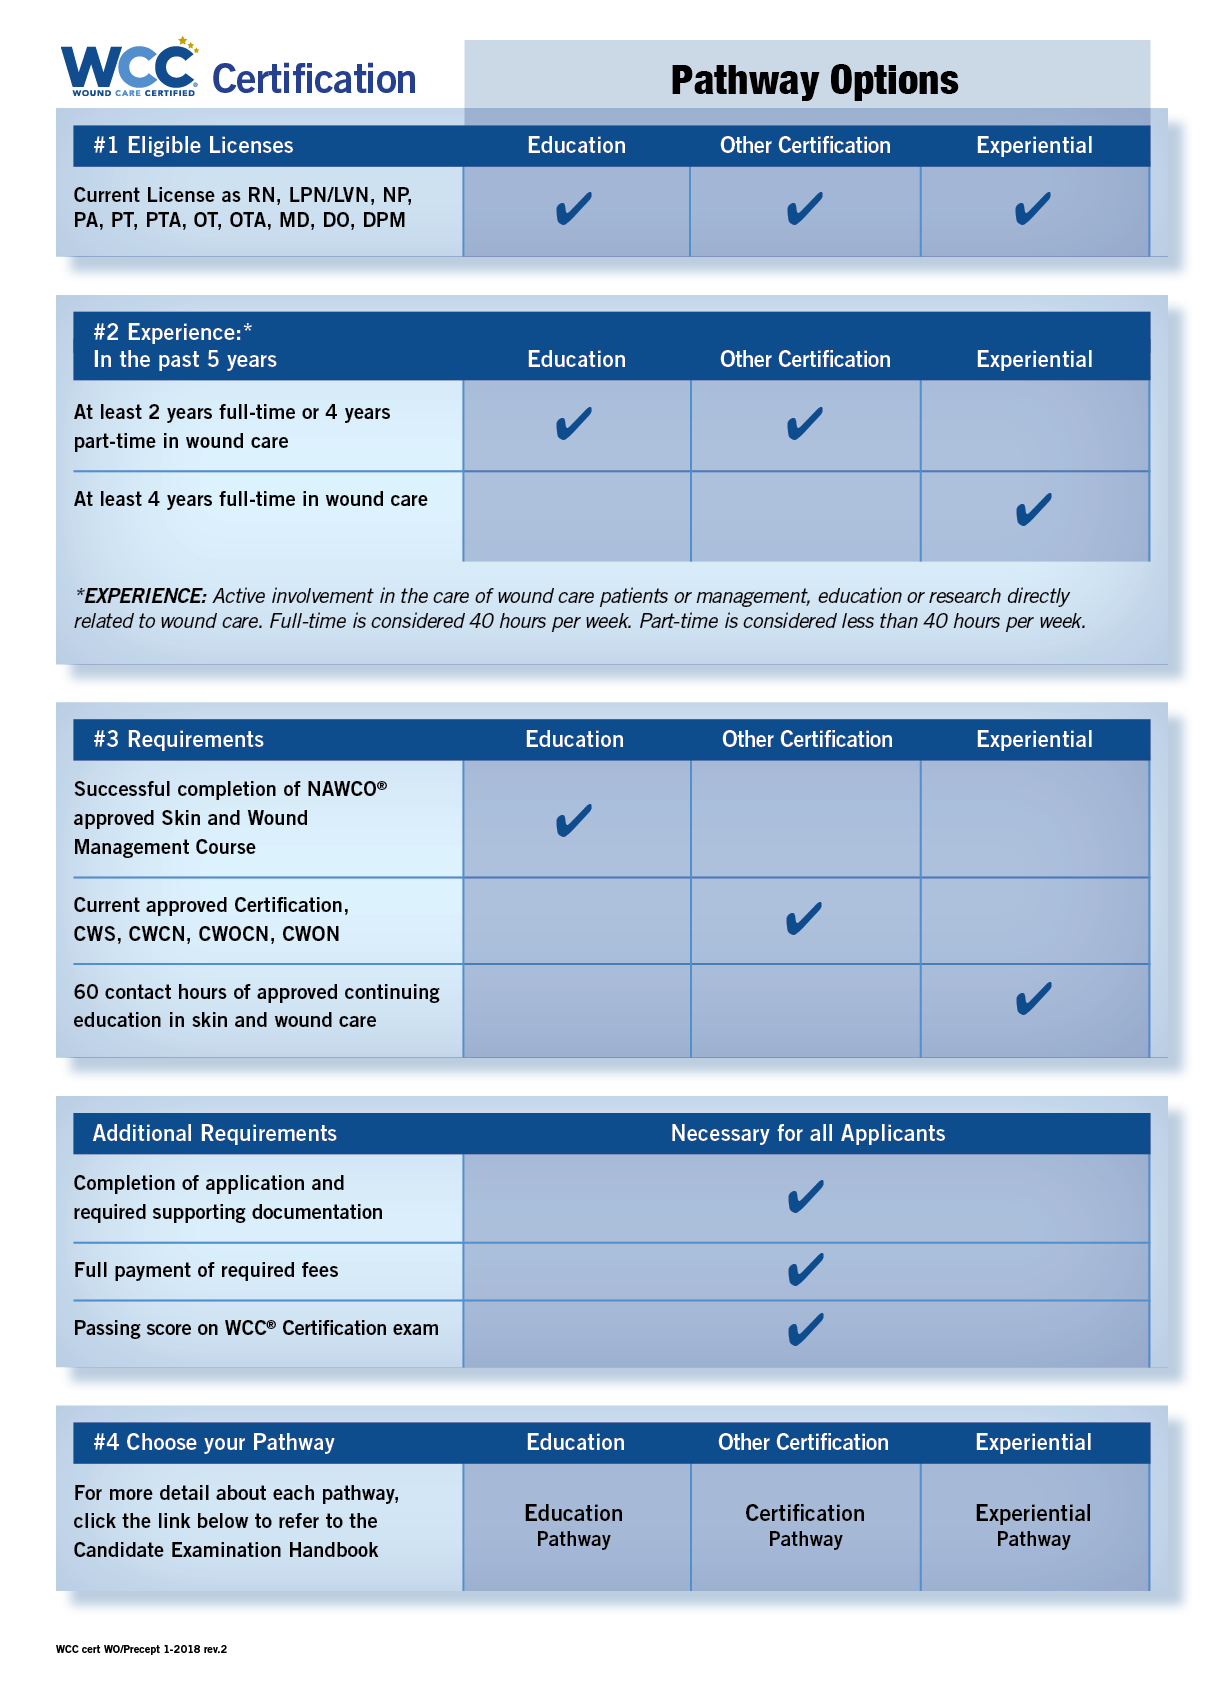 Wound care certification nawco wound care and ostomy the chart below shows the different pathway options required to sit for the wound care certified wcc certification exam review the information to see which 1betcityfo Images